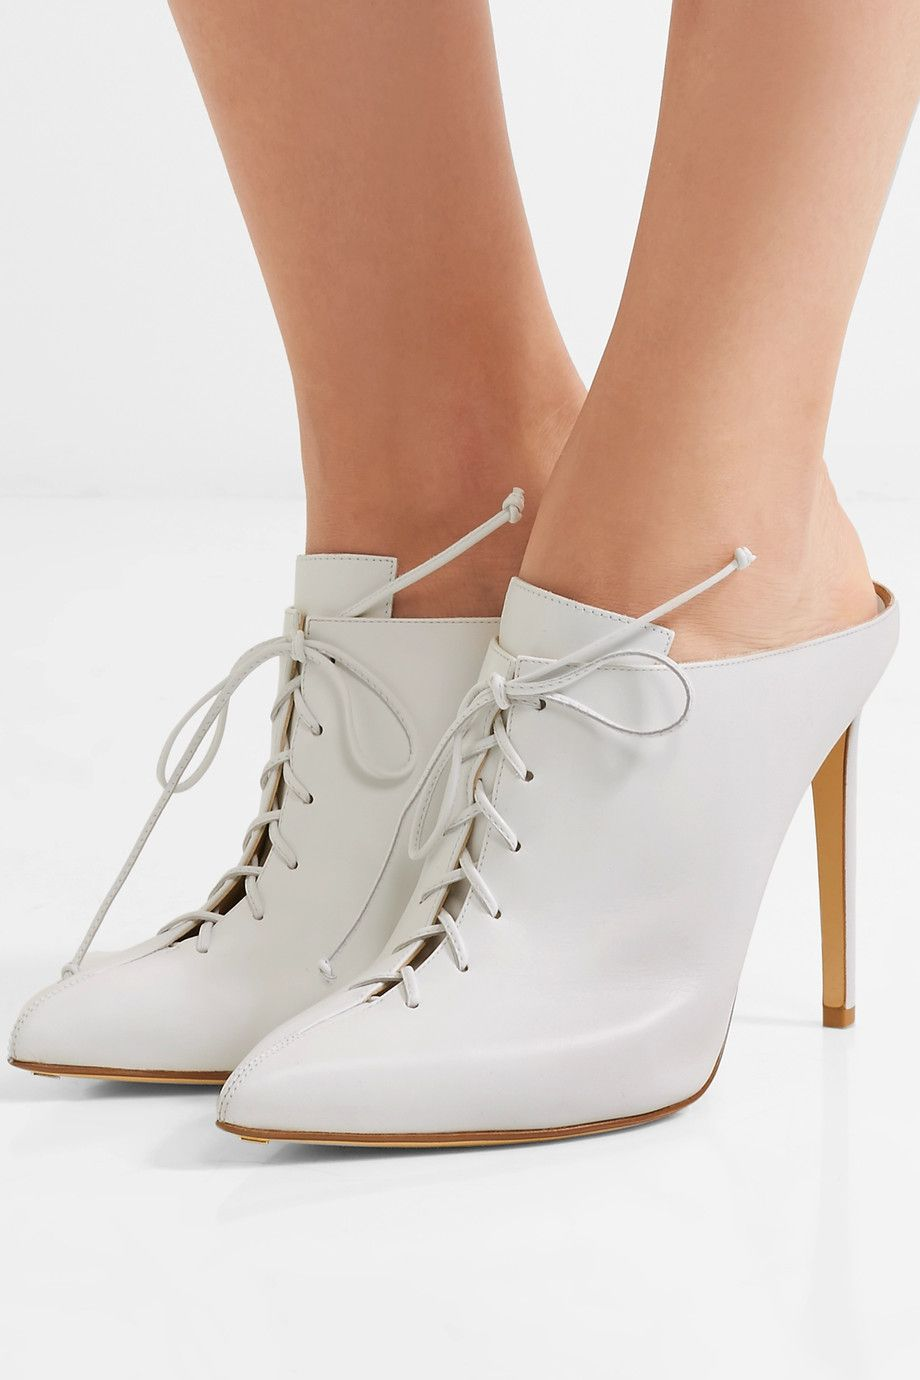 Francesco Russo Leather lace-up mules Bn8cjgpwVb